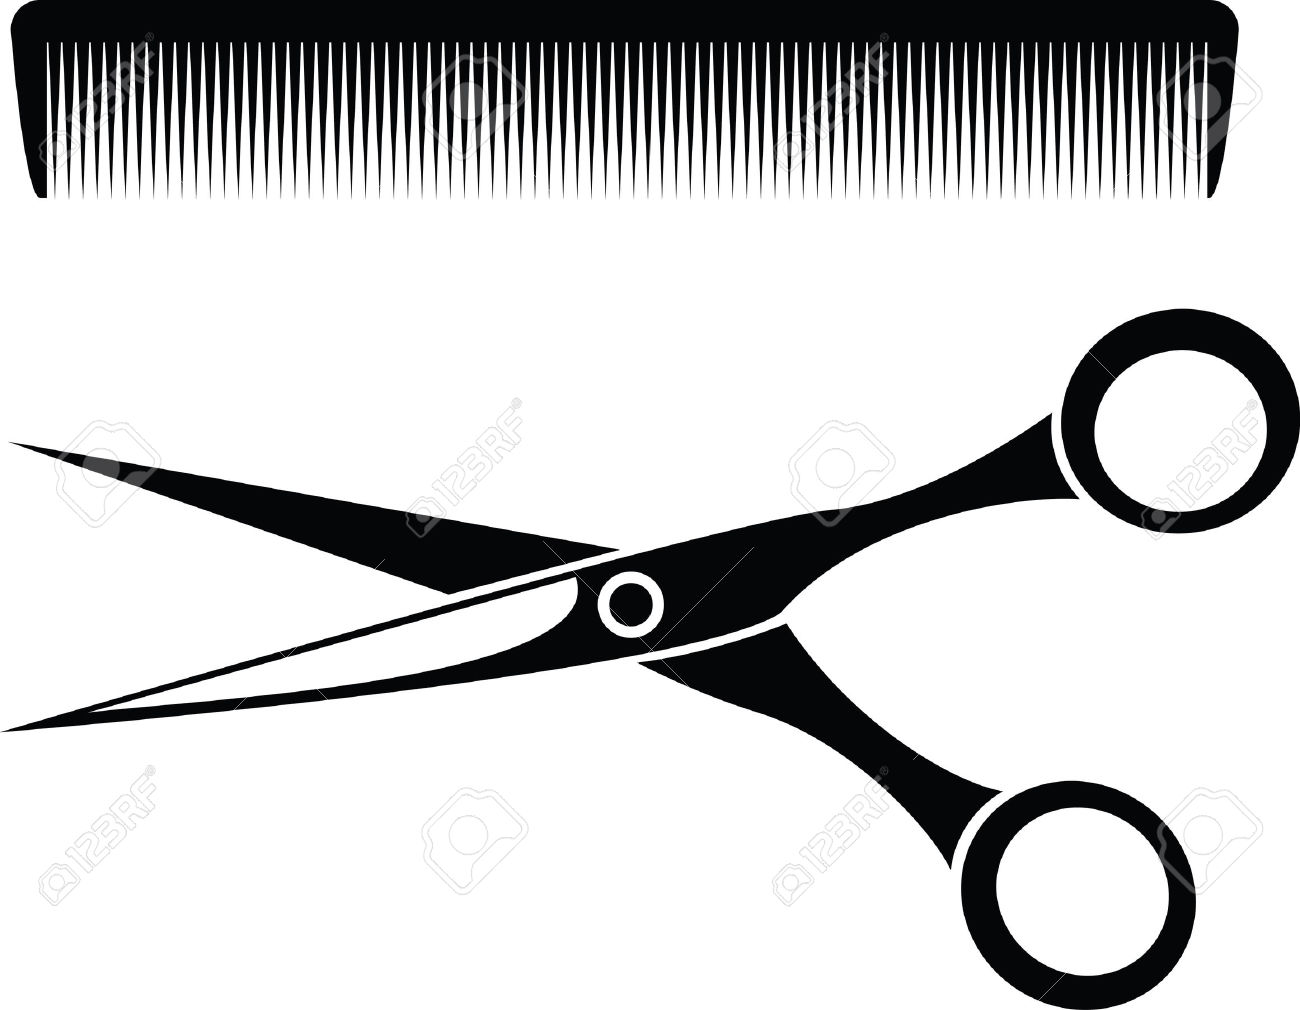 Barber scissors and comb clipart png black and white Hair Scissors And Comb Clipart   Free download best Hair Scissors ... png black and white